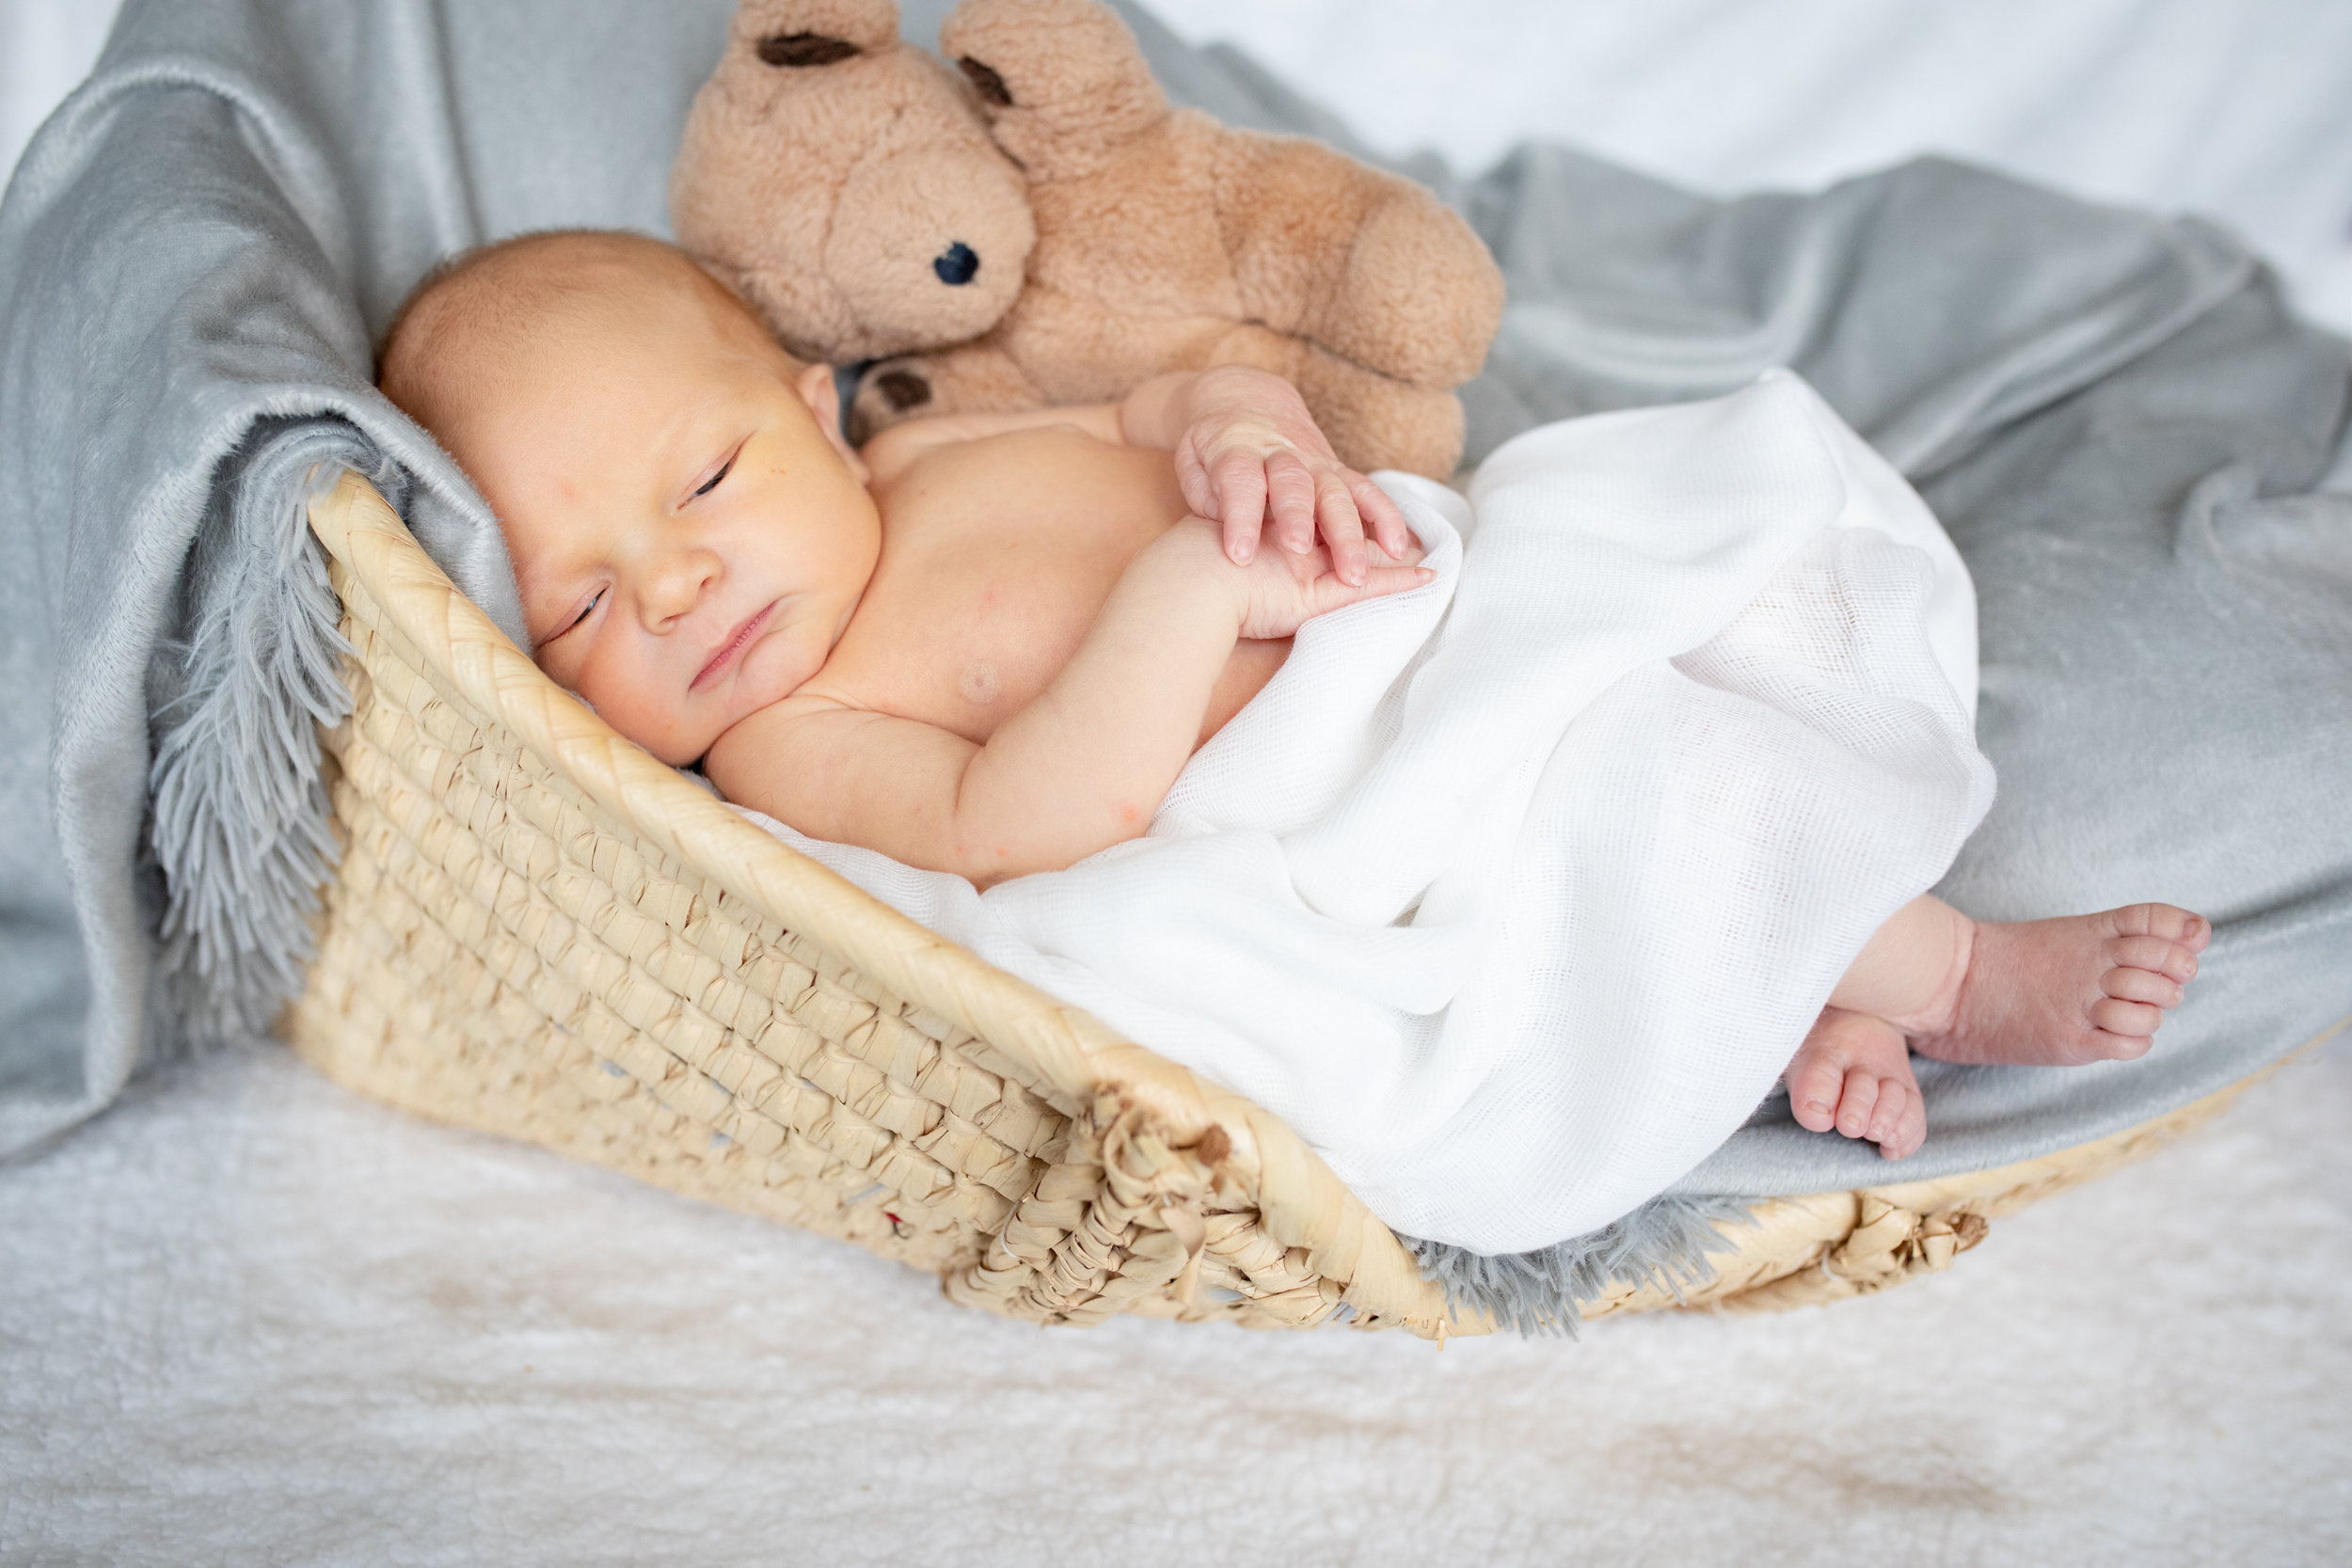 Newborn-London-Jodie-Aldred-Photography-Chatham-Middlesex-Lambton-Baby-family-parents-ontario.jpg